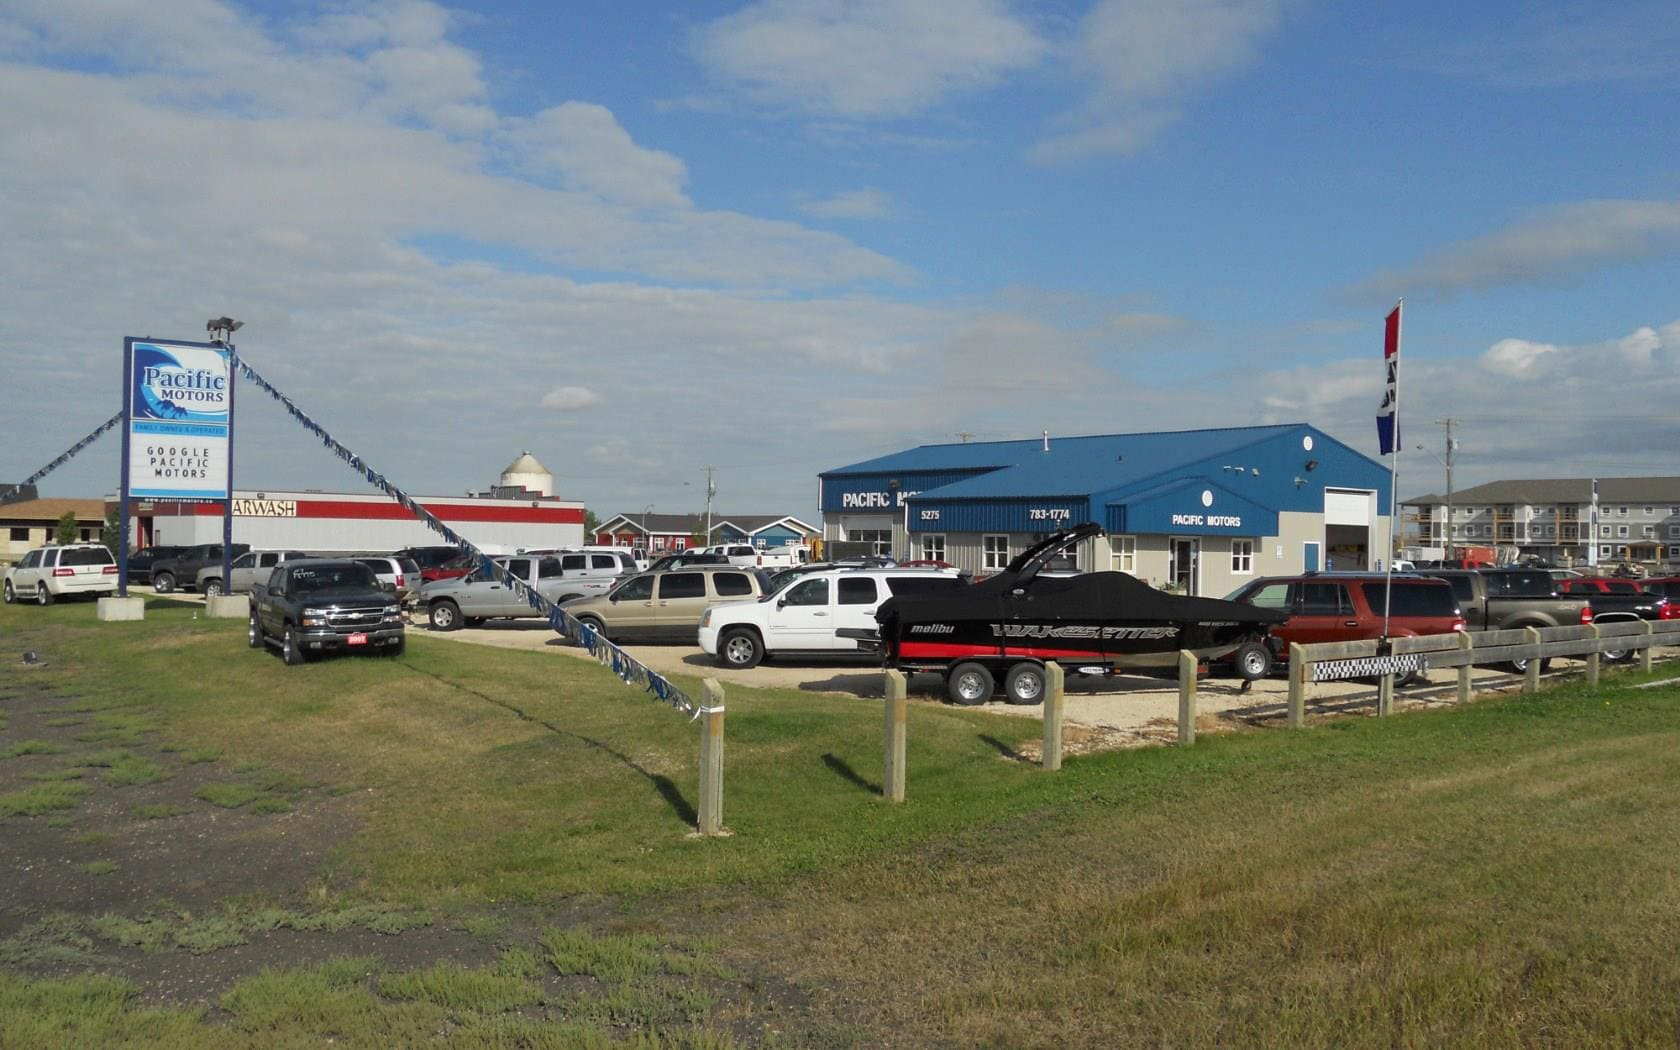 Pacific Motors | Used dealership in Headingley, MB R4H 1J9